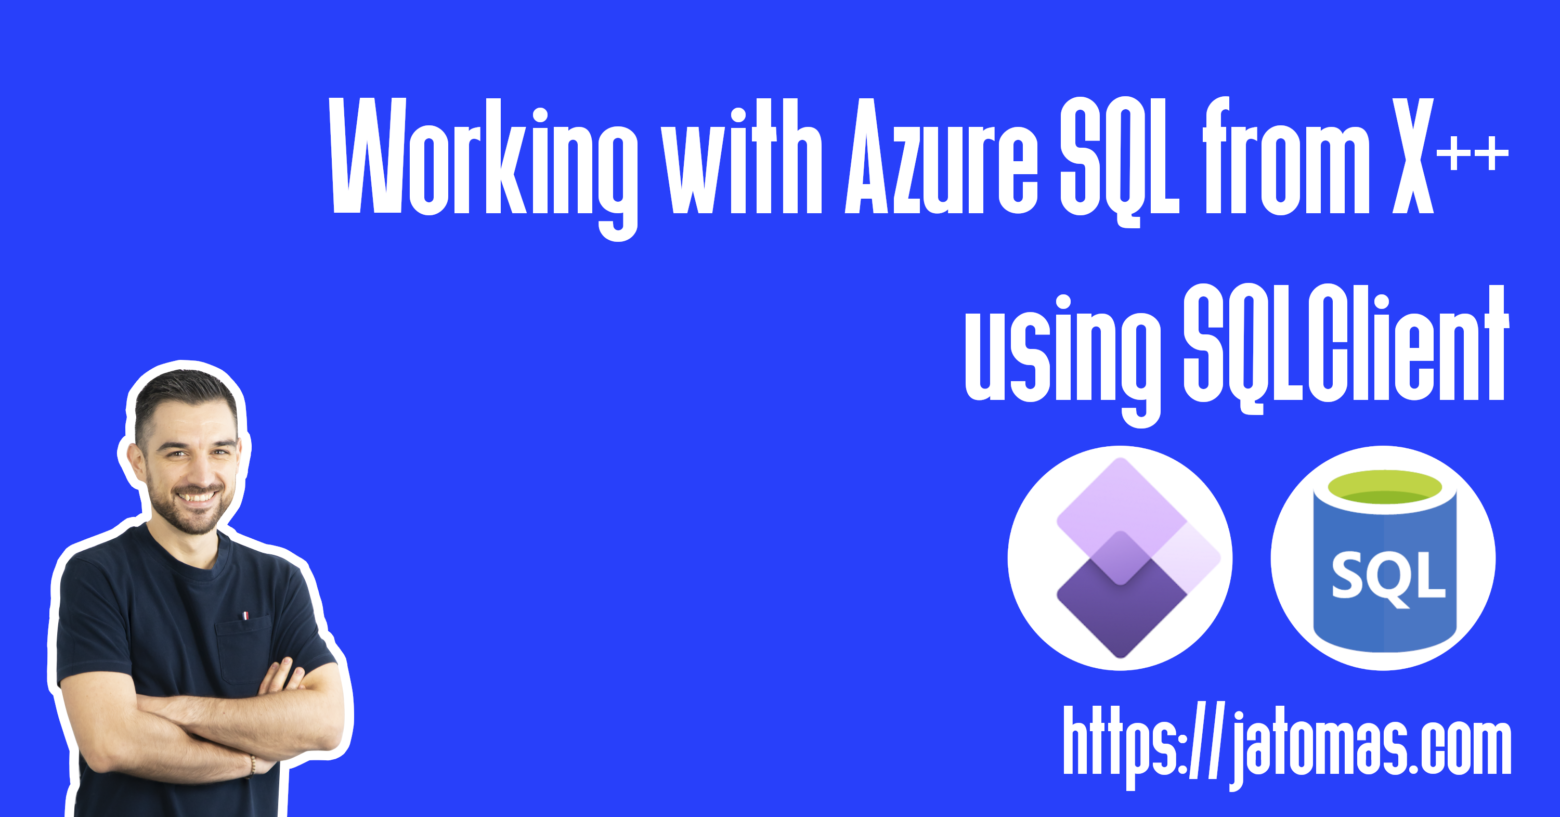 Working with Azure SQL from X++ using SQLClient